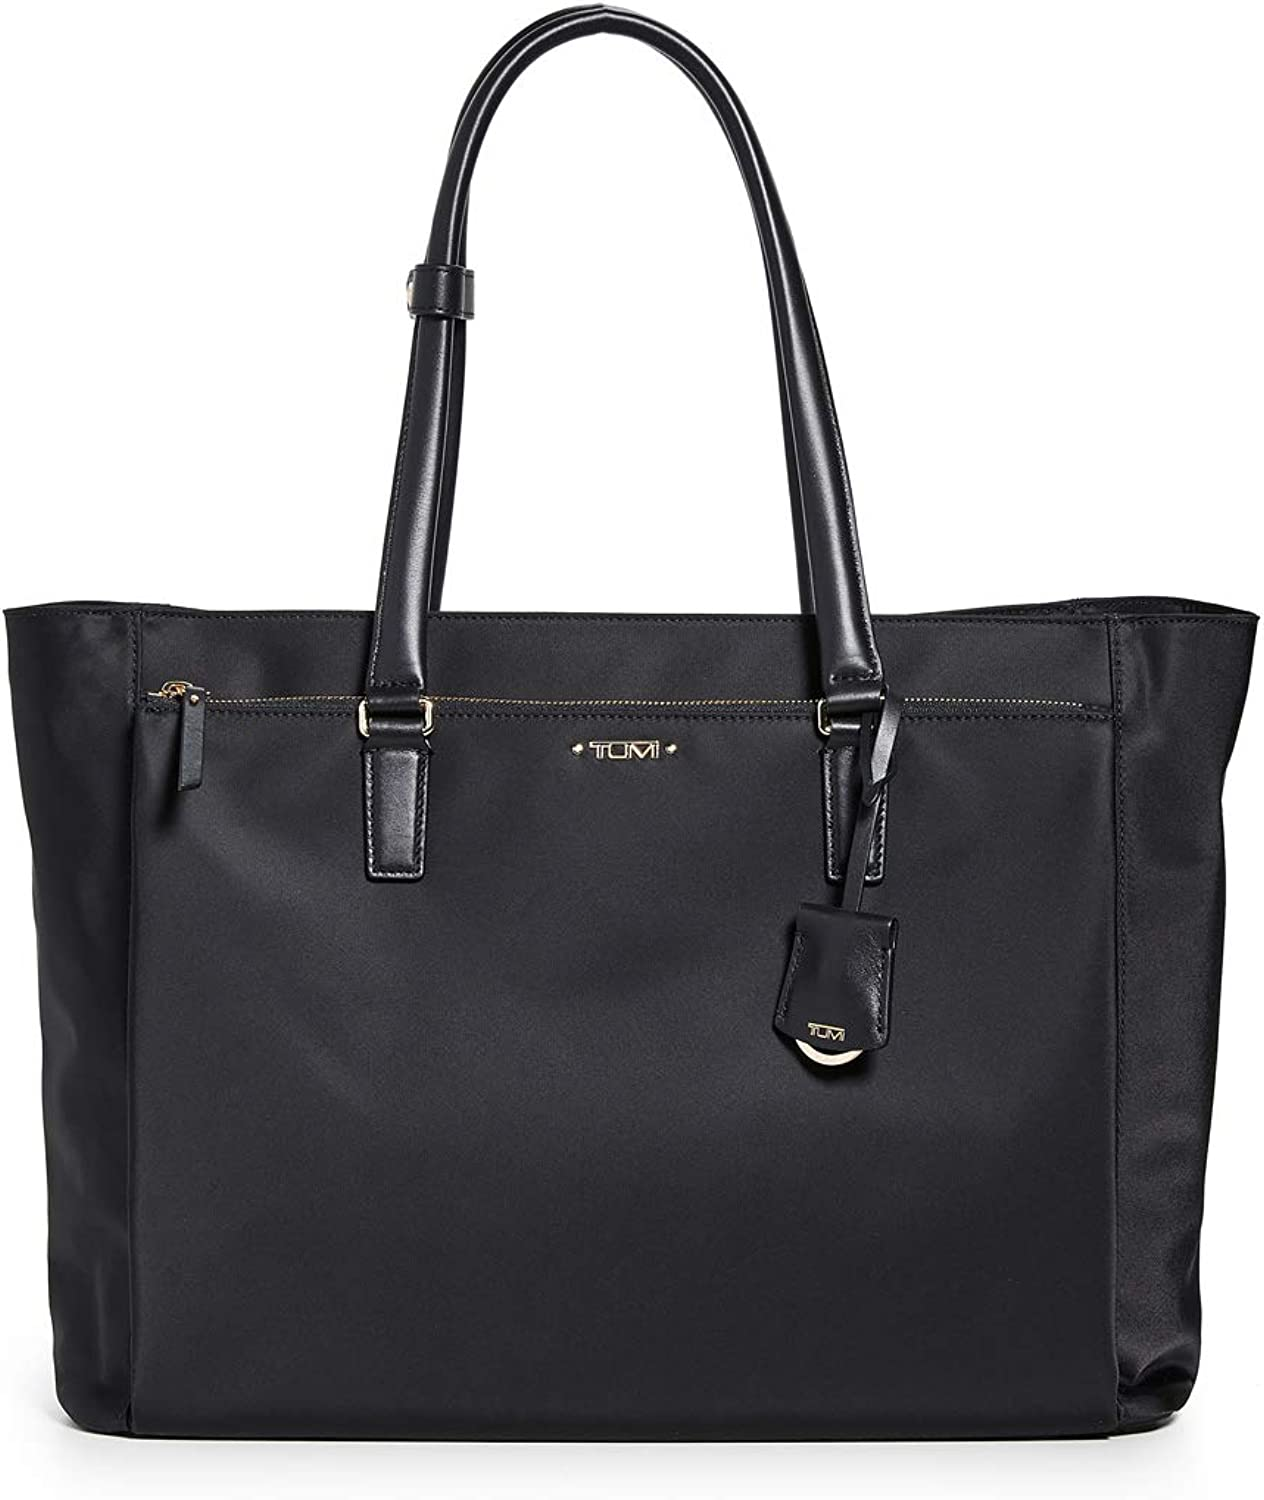 Tumi Women's Voyageur Bailey Business Tote